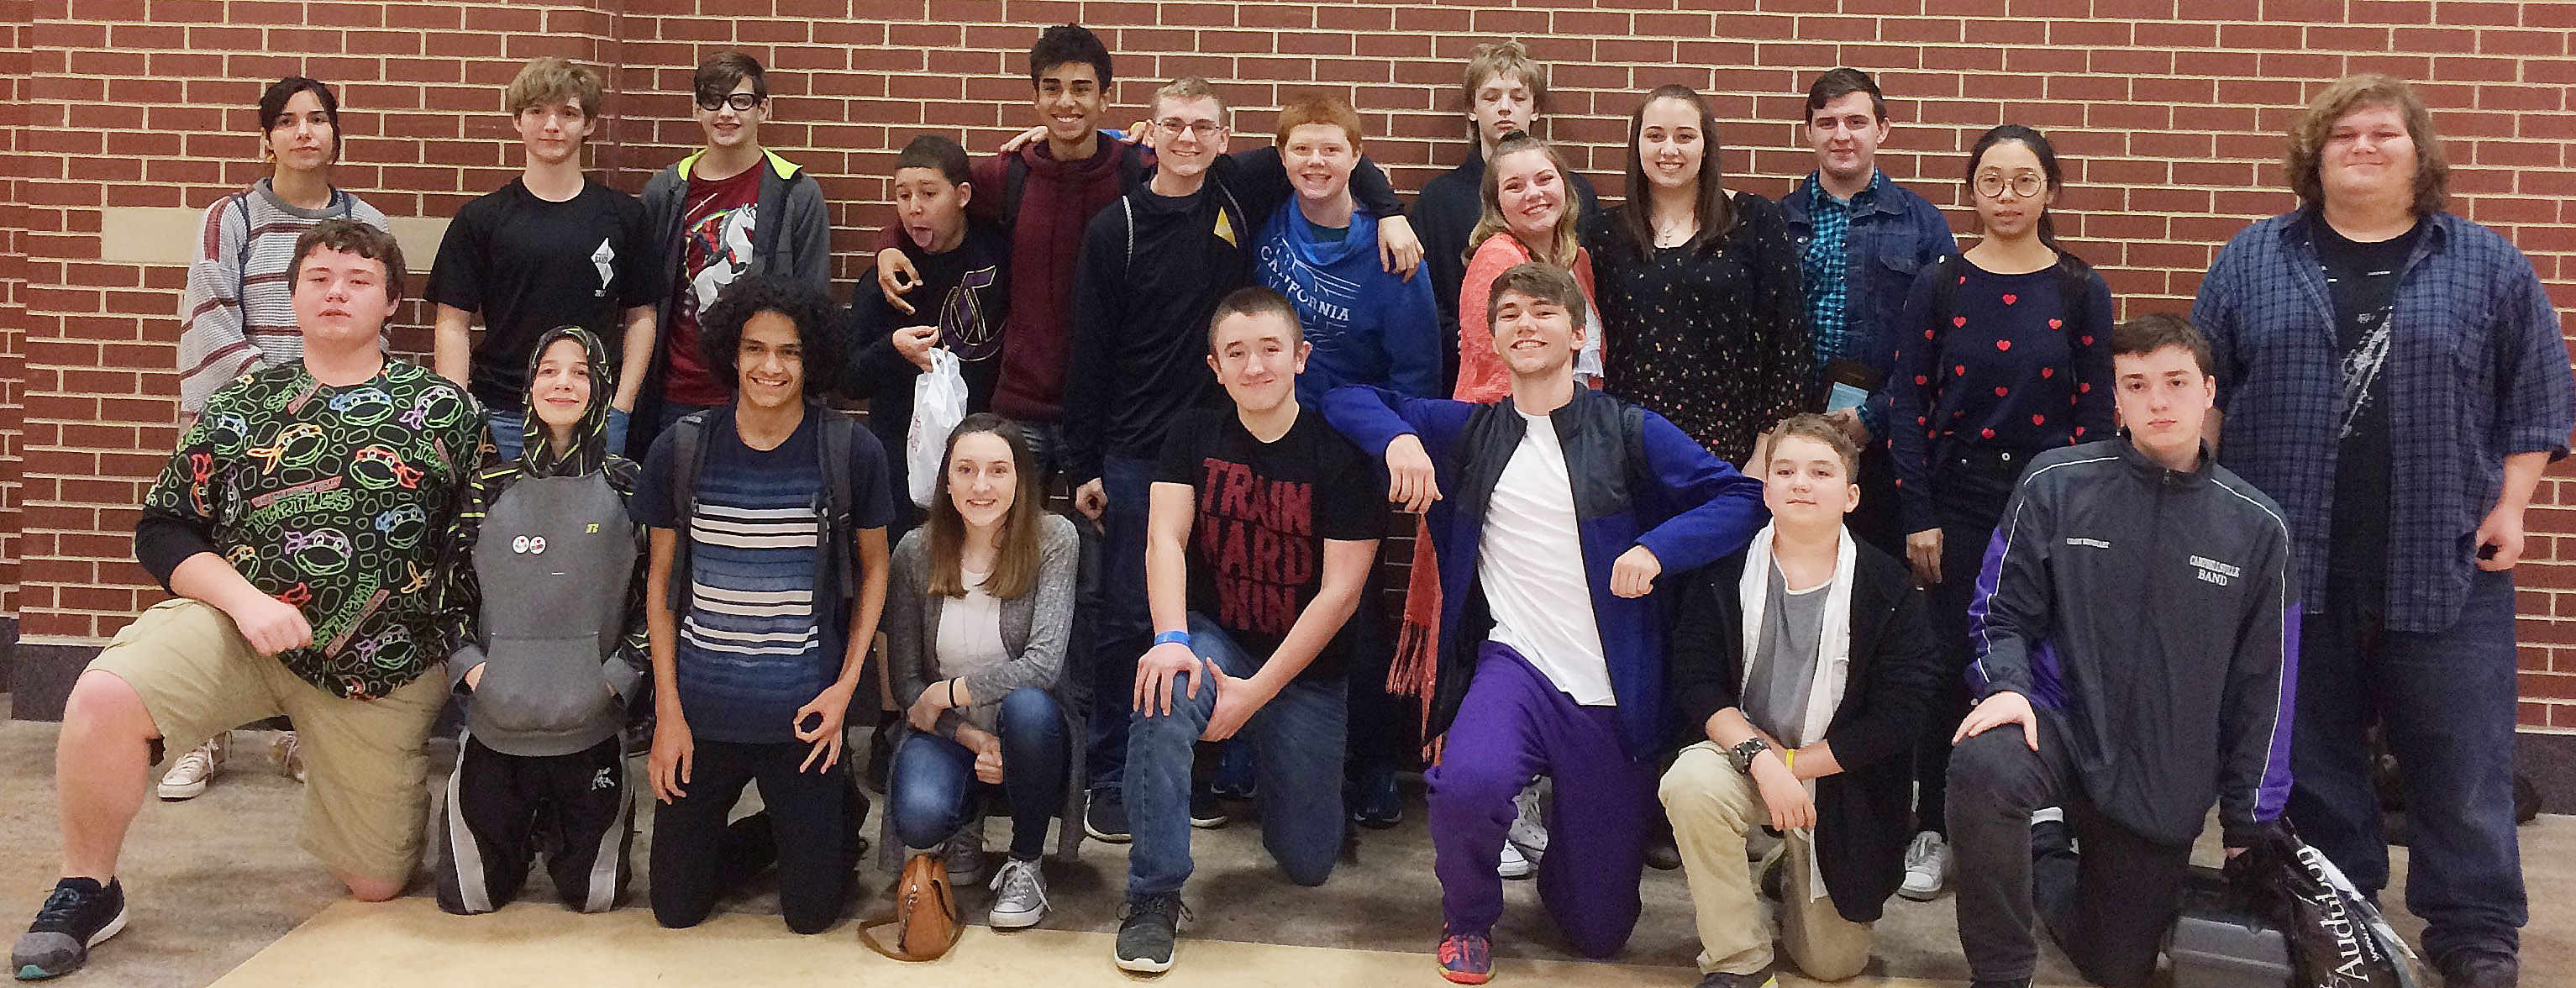 Campbellsville High School students brought home several top awards at the state STLP competition on Thursday, March 29. From left, front, are sophomore Conner Riley, Campbellsville Middle School sixth-grader Thomas Lucas, junior Ben Arachi, sophomore Zoe McAninch, freshman Zachary Shaw, senior Christian Berry, sixth-grader Nathan McFarland and sophomore Grant Rinehart. Back, junior Celeste Hassman, sophomore Tristin Lopez, sixth-grader Dalton Morris, seventh-grader Ezekiel Bell, sophomore David Silva, junior Brandon Greer, freshman Colin Harris, sixth-grader Jacob Releford, juniors Hayley Stapleton and Elizabeth Sullivan, senior Austin Fitzgerald and juniors Annie Lee and Randy Harris.